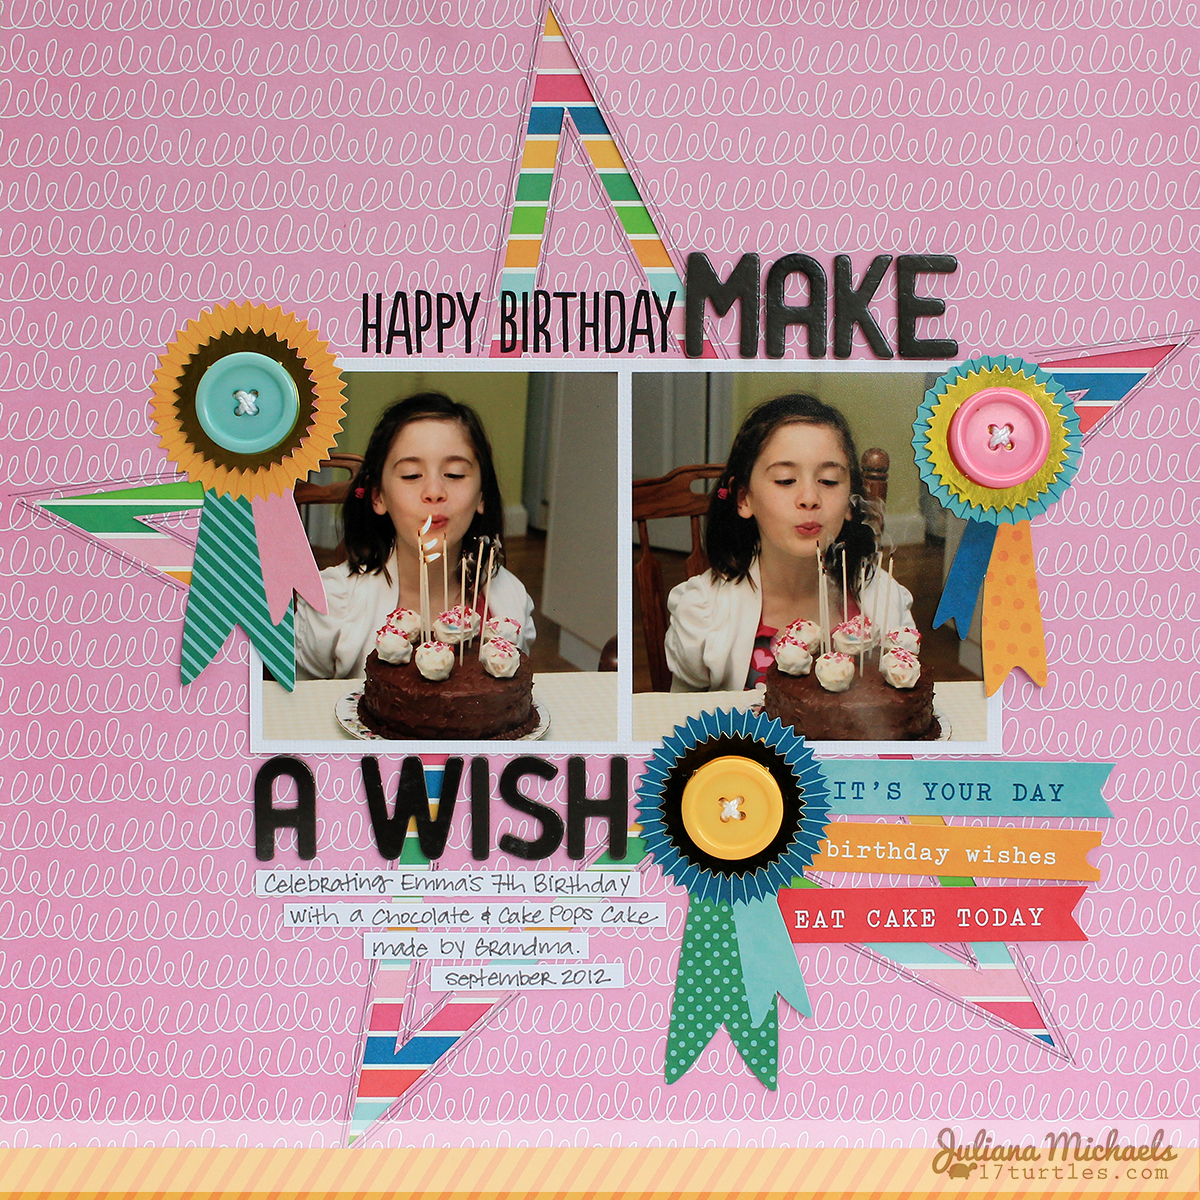 Make A Wish Scrapbook Page by Juliana Michaels for Pebbles Inc using Birthday Wishes